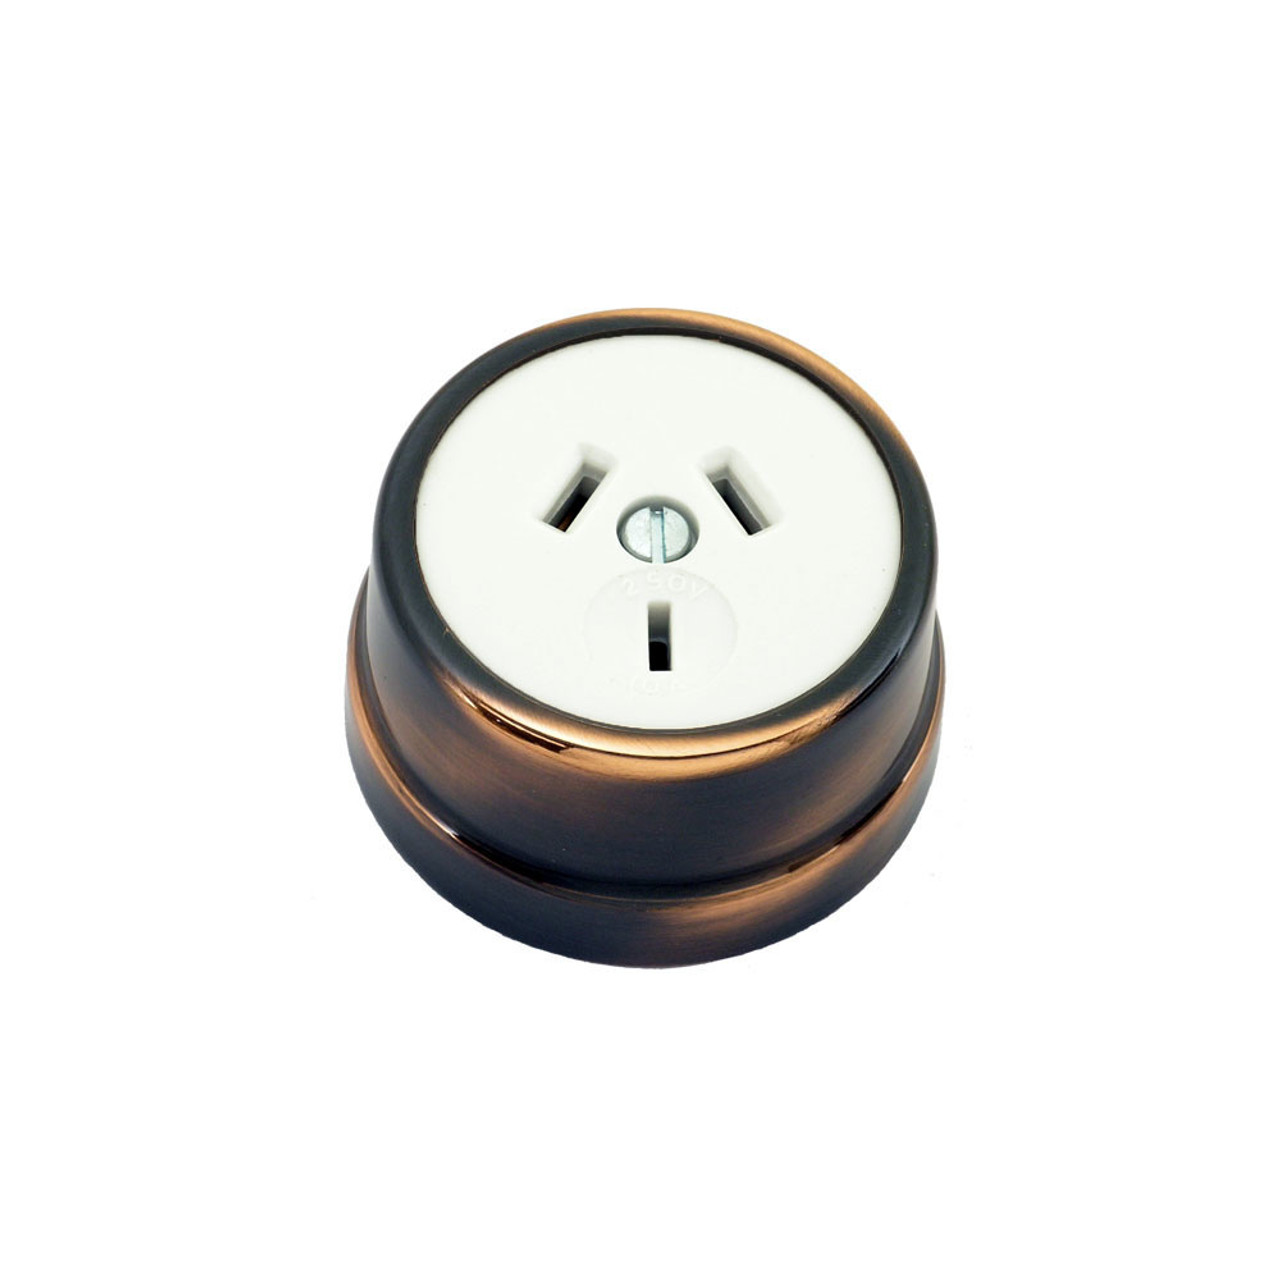 Heritage Clipsal Round Power Point Socket - White Socket with Florentine Bronze Cover